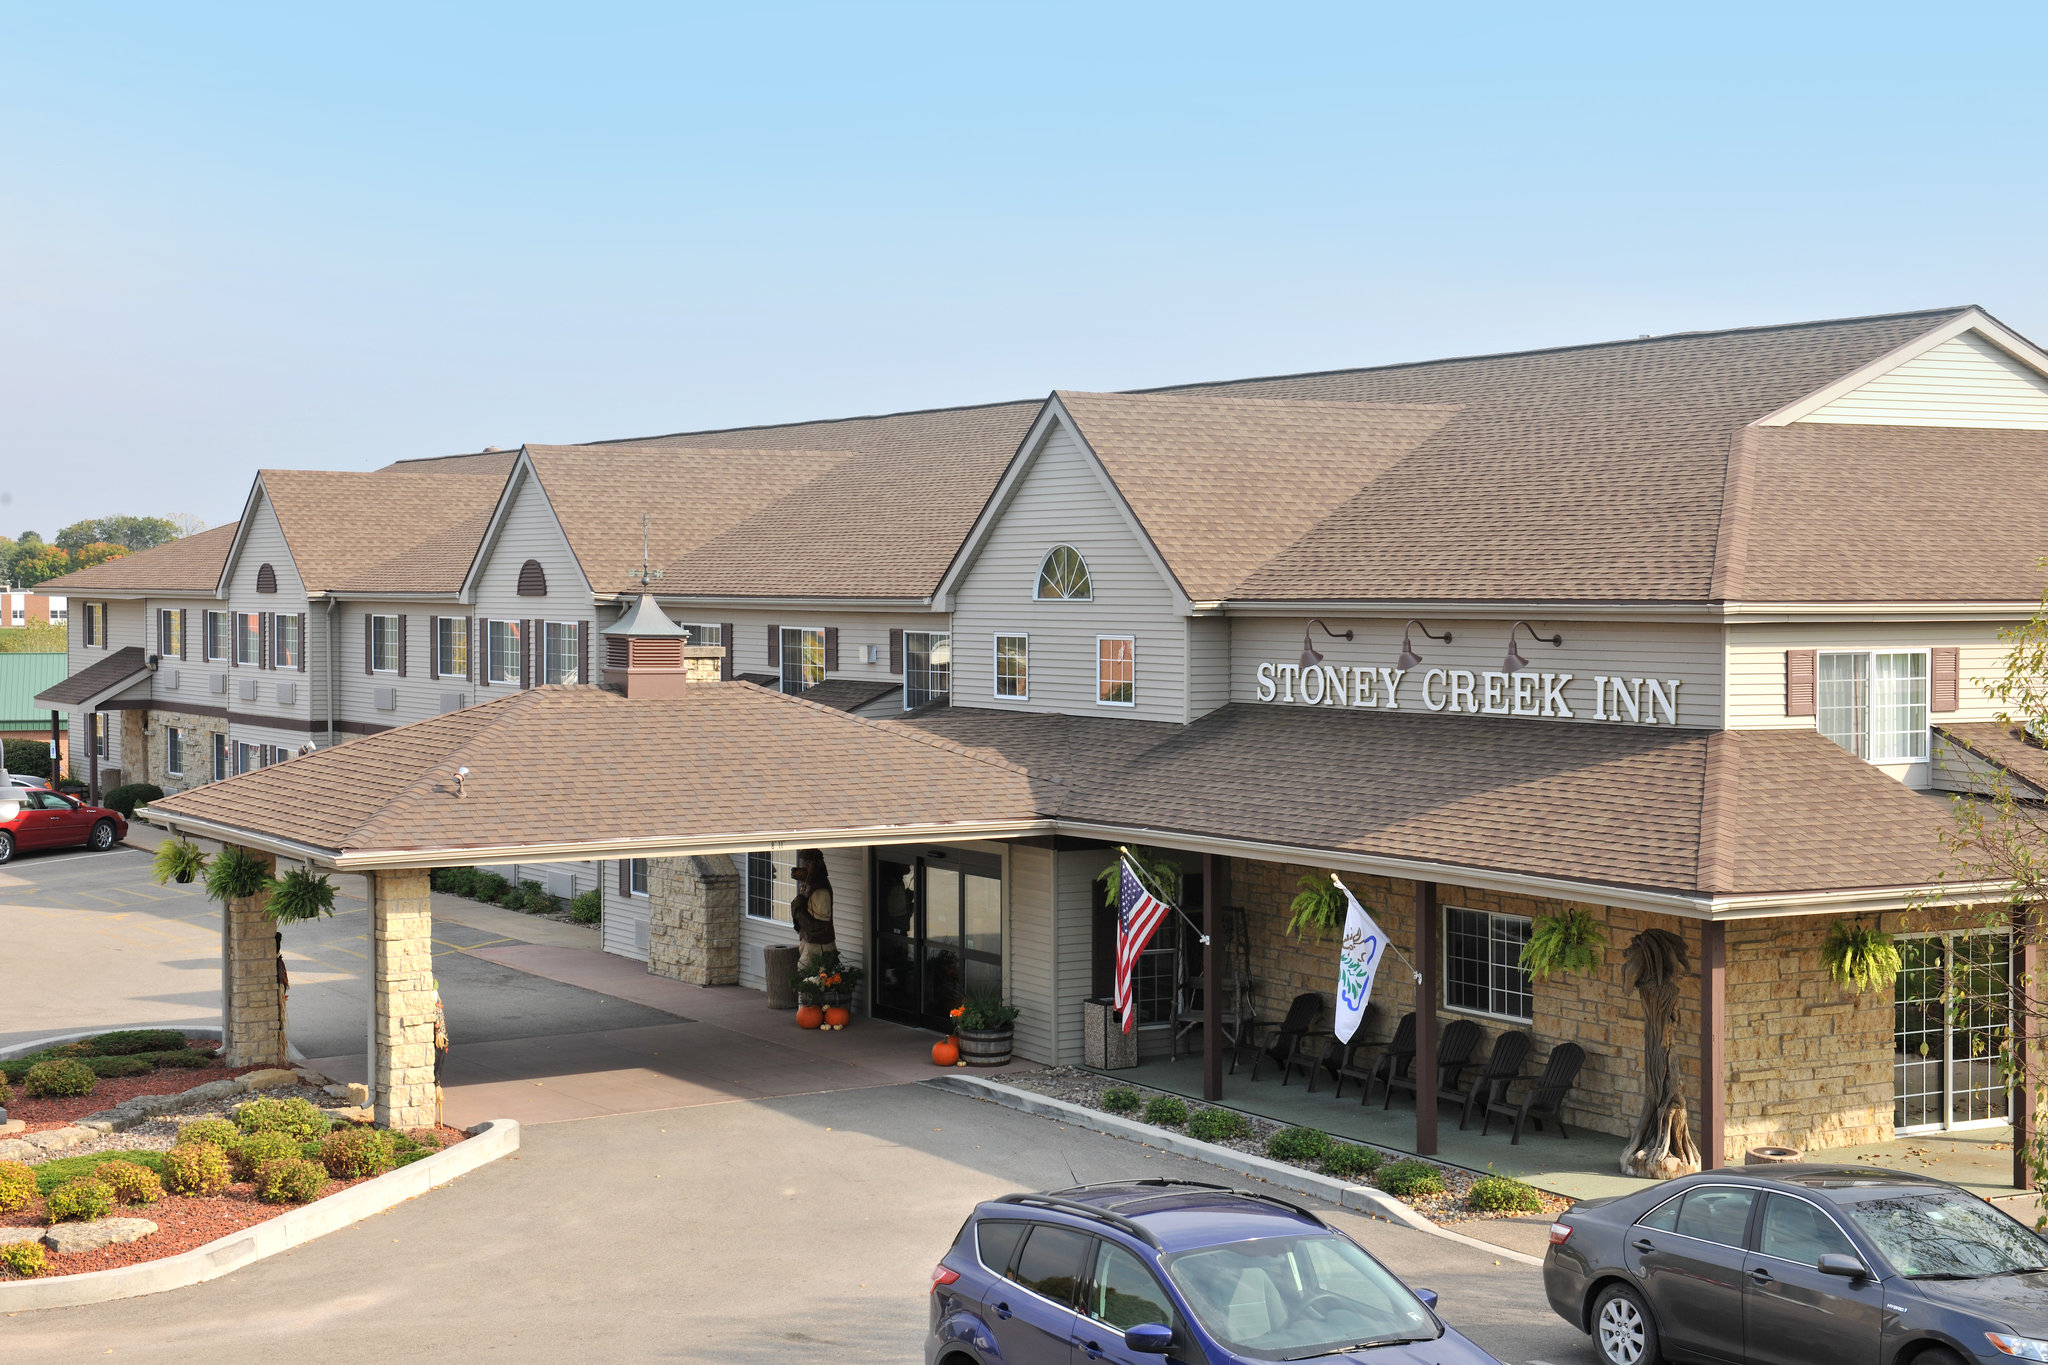 Stoney Creek Inn & Conference Center